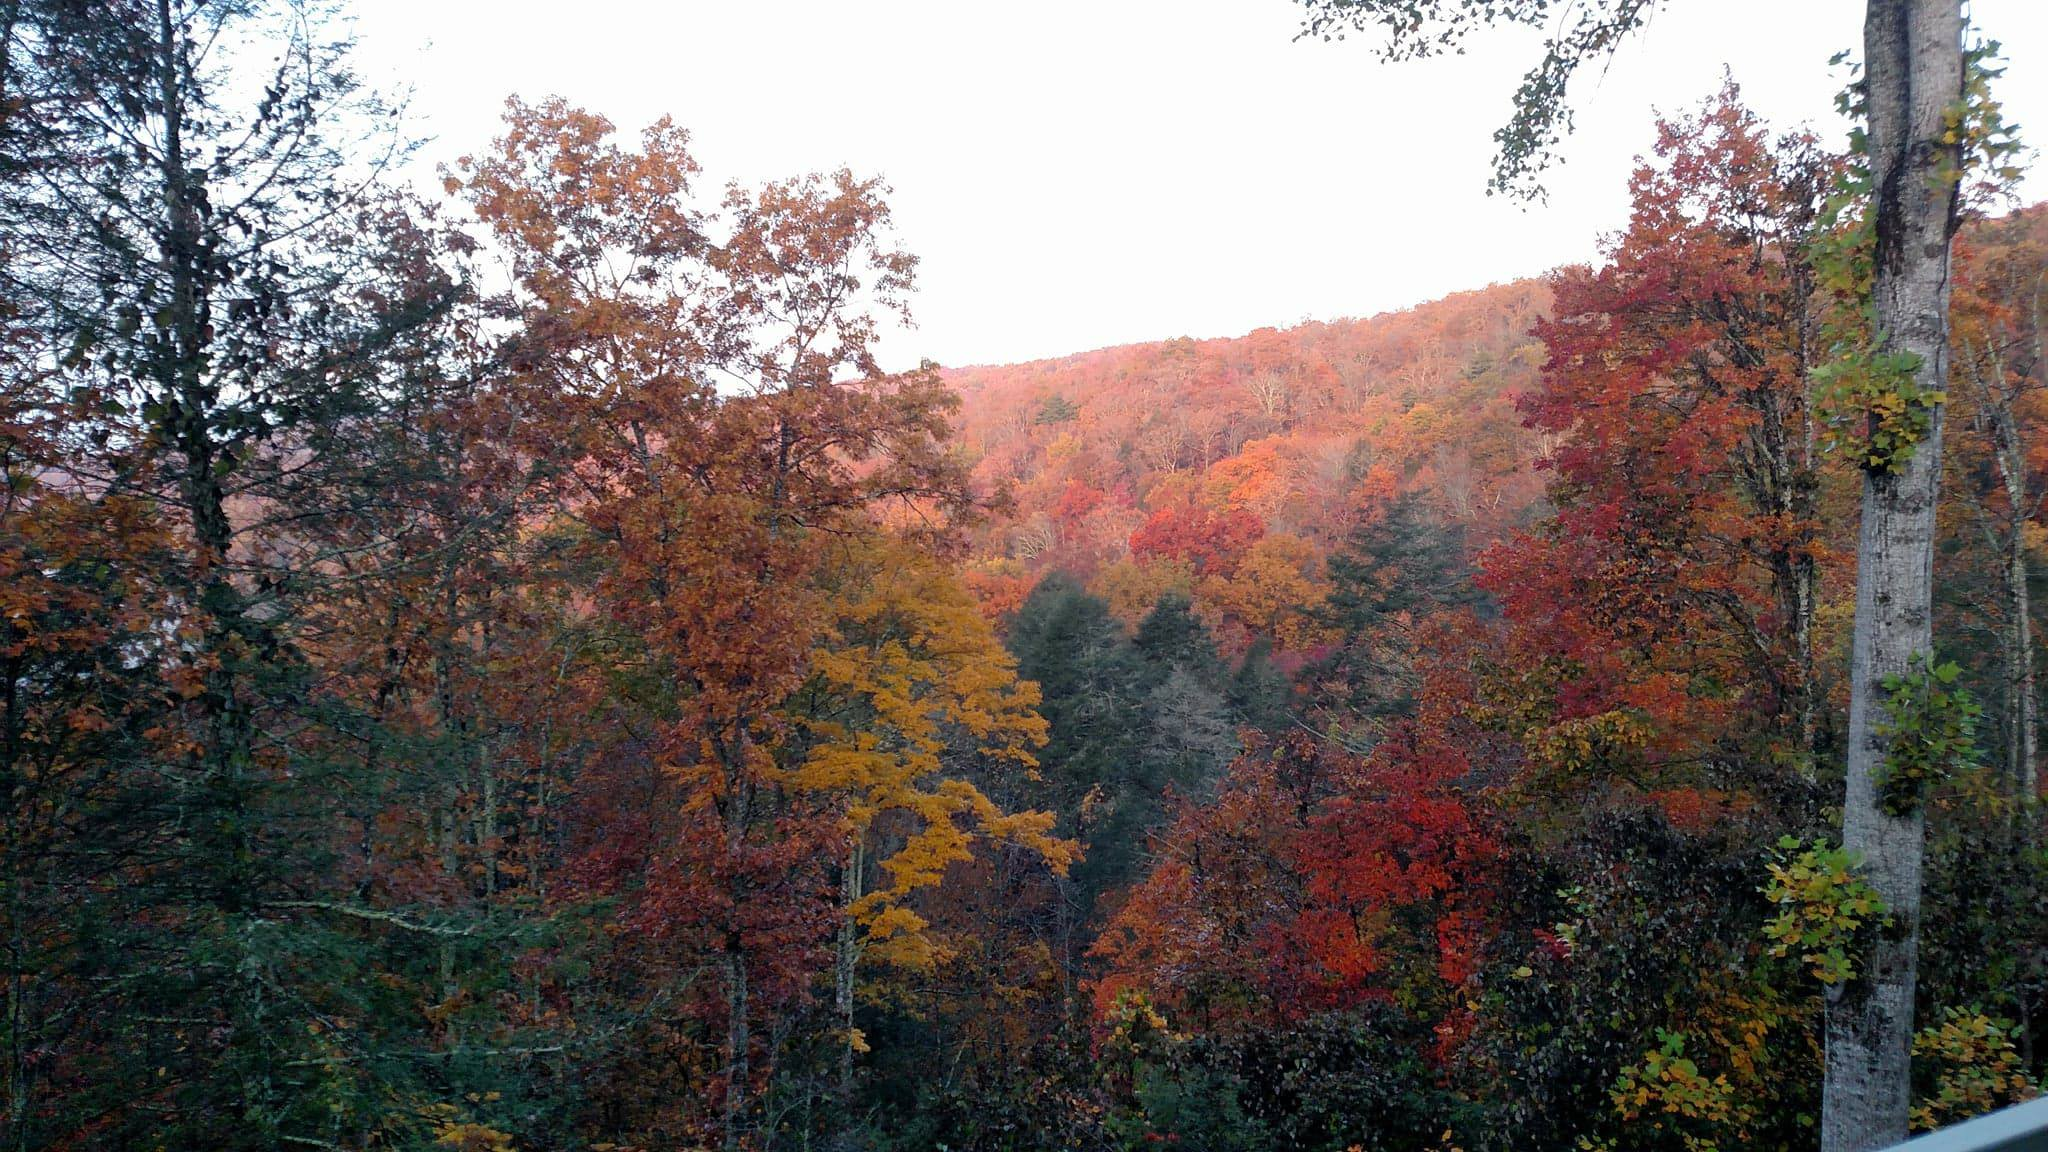 Pine Mountain Ridge in autumn, Kentucky. Photo credit: Leah D. Schade. All rights reserved.